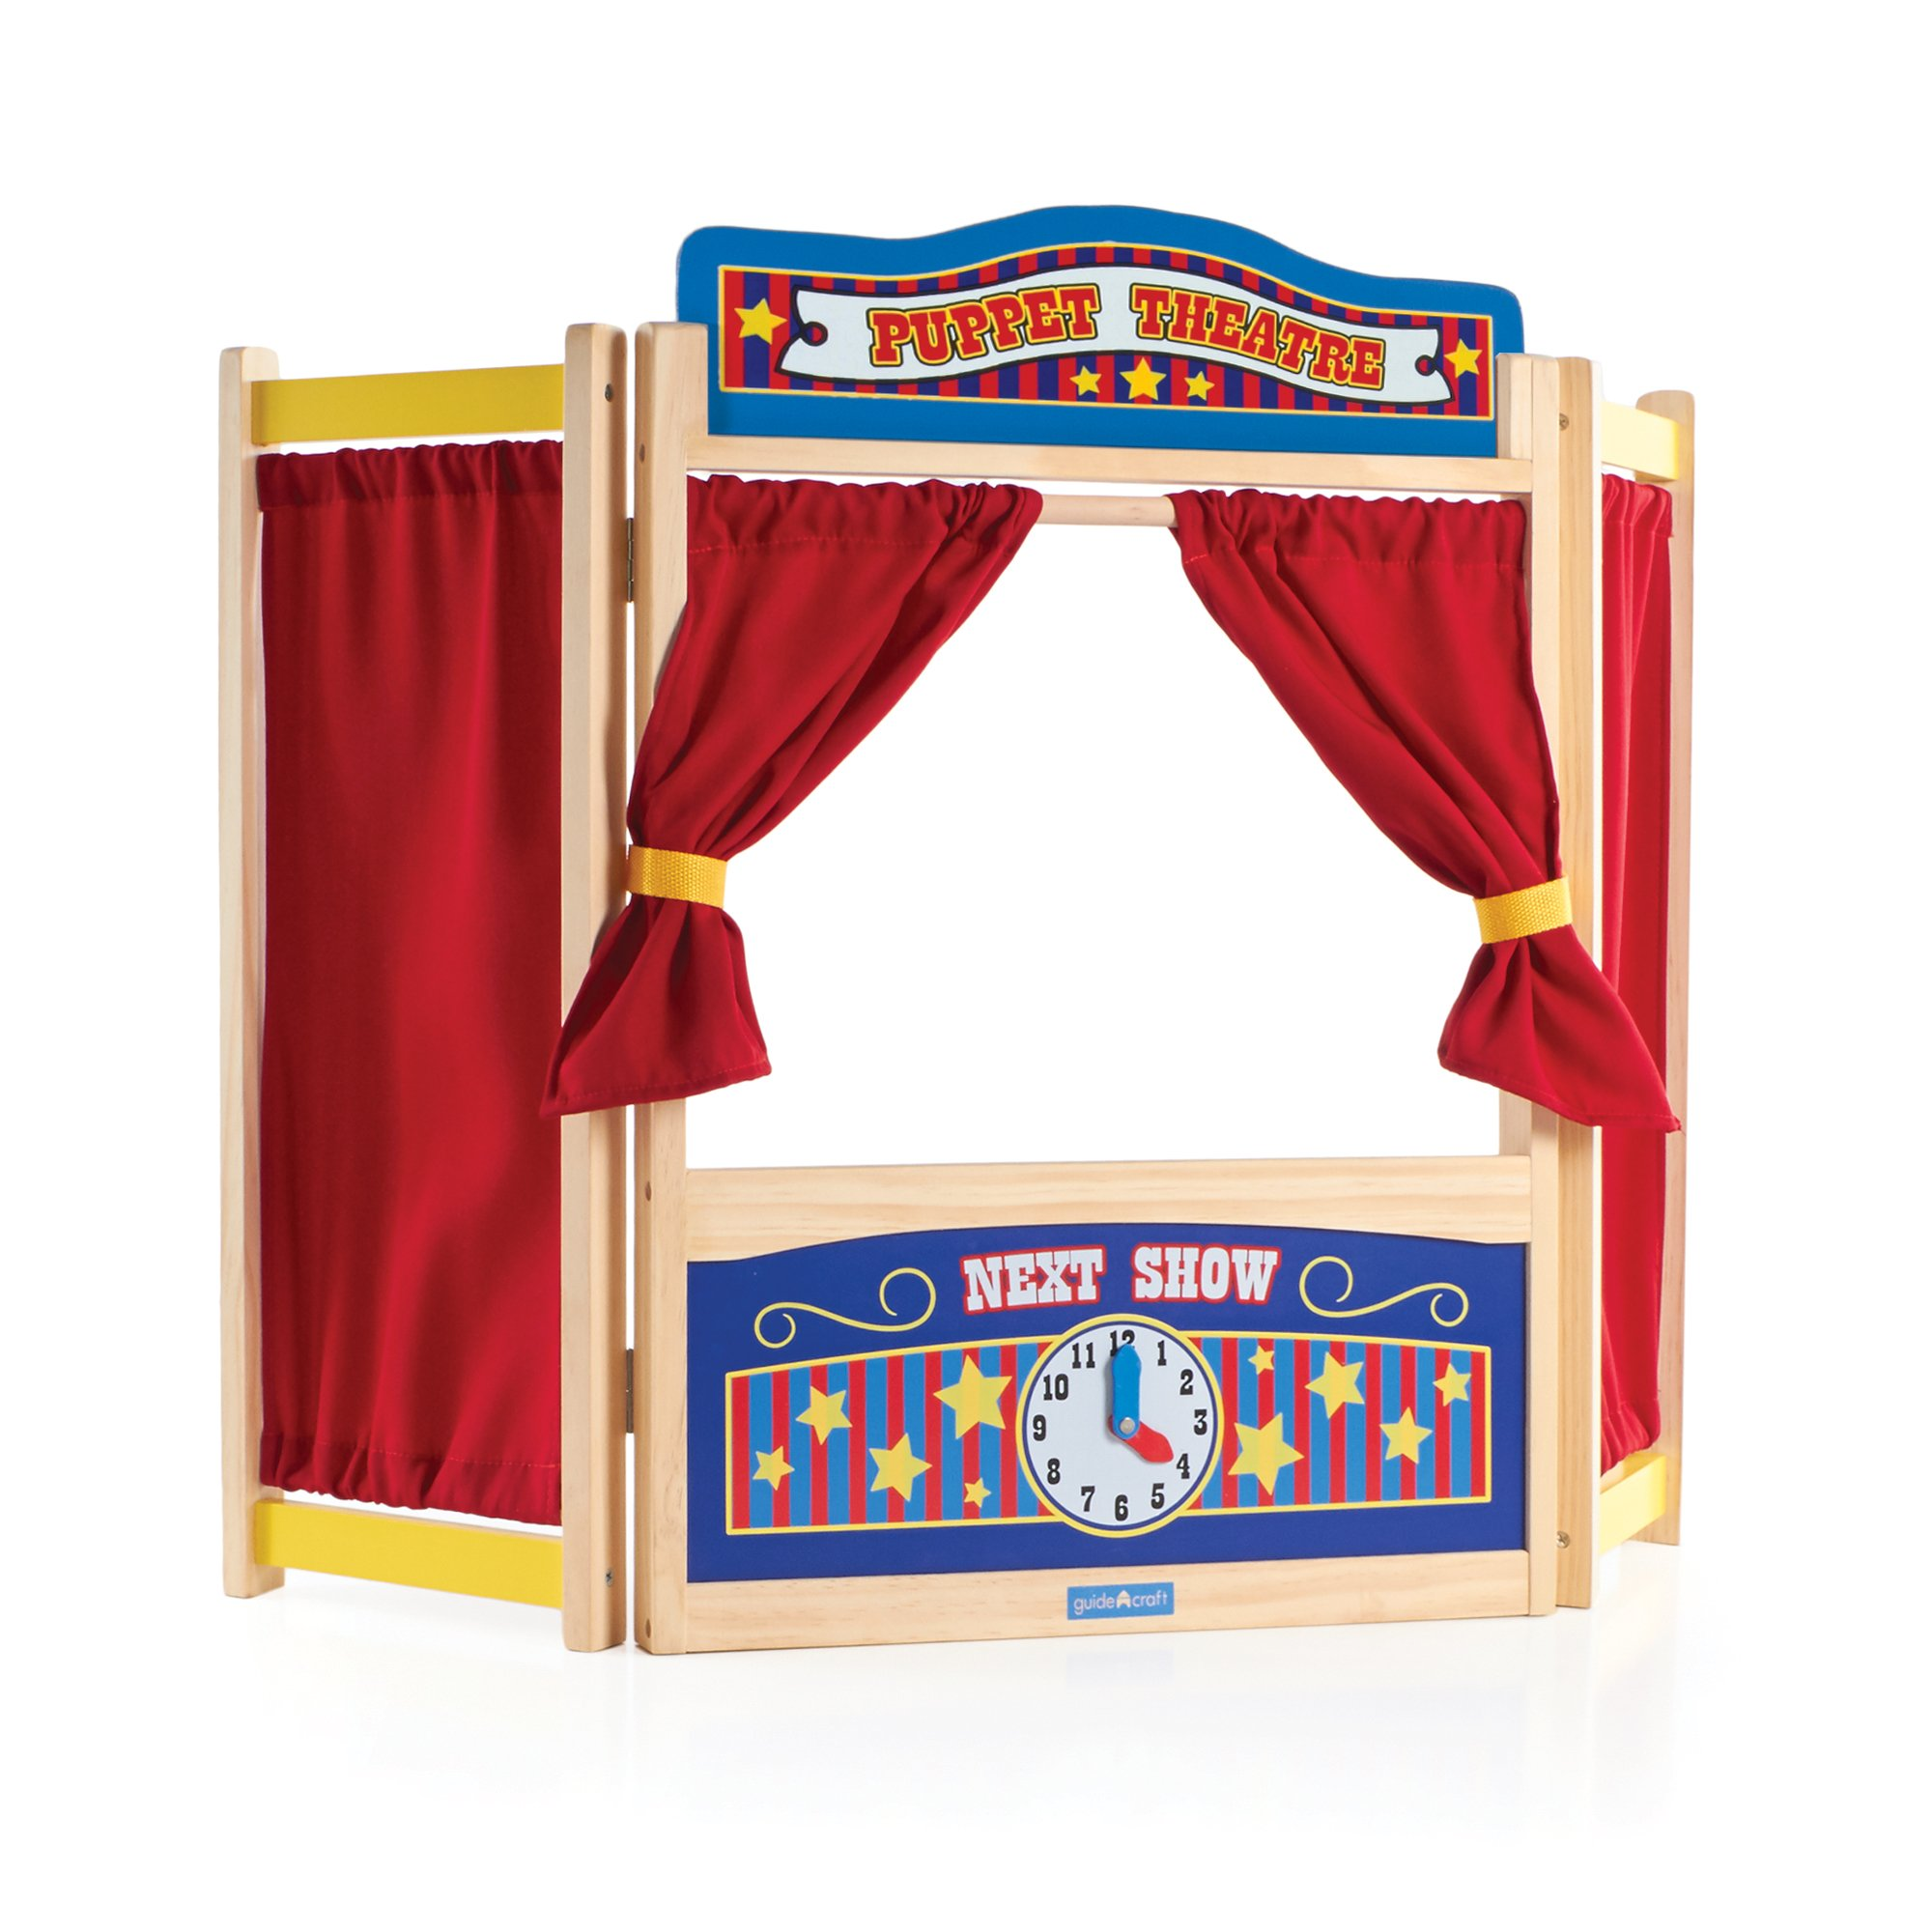 Guidecraft Wooden Tabletop Puppet Theater for Kids - Toddler's Foldable Dramatic Play Imaginative Theater W/Chalkboard, Curtains and Clock